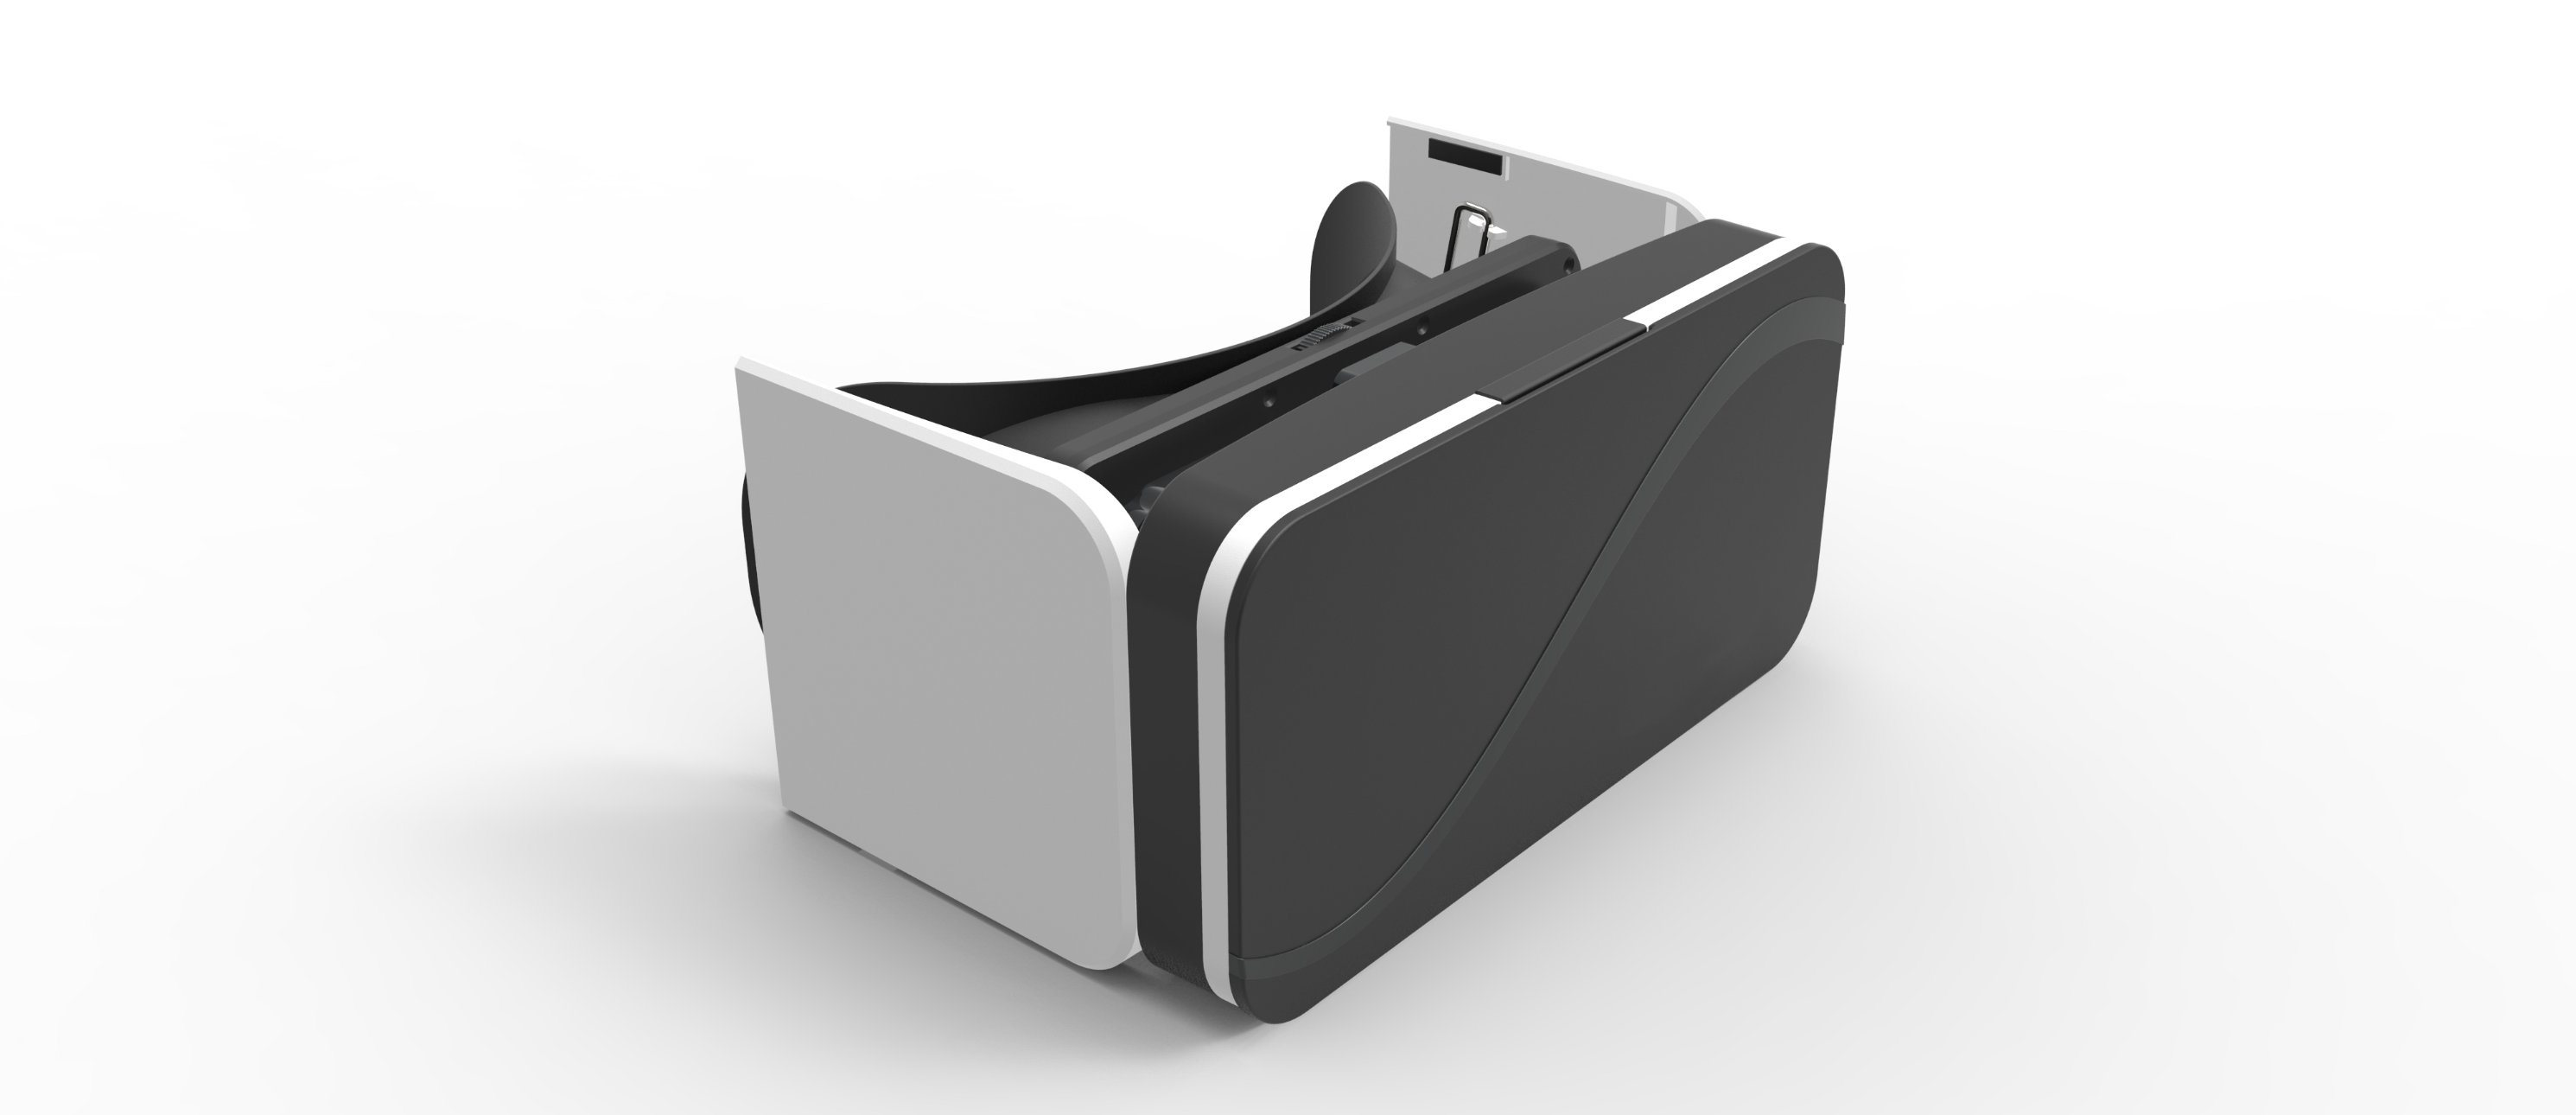 "2017 Vr Mini Vr Glasses A6 Folded 3D Glasses for 3.5"" - 6.0"" Smart Phones Plastic Glasses"